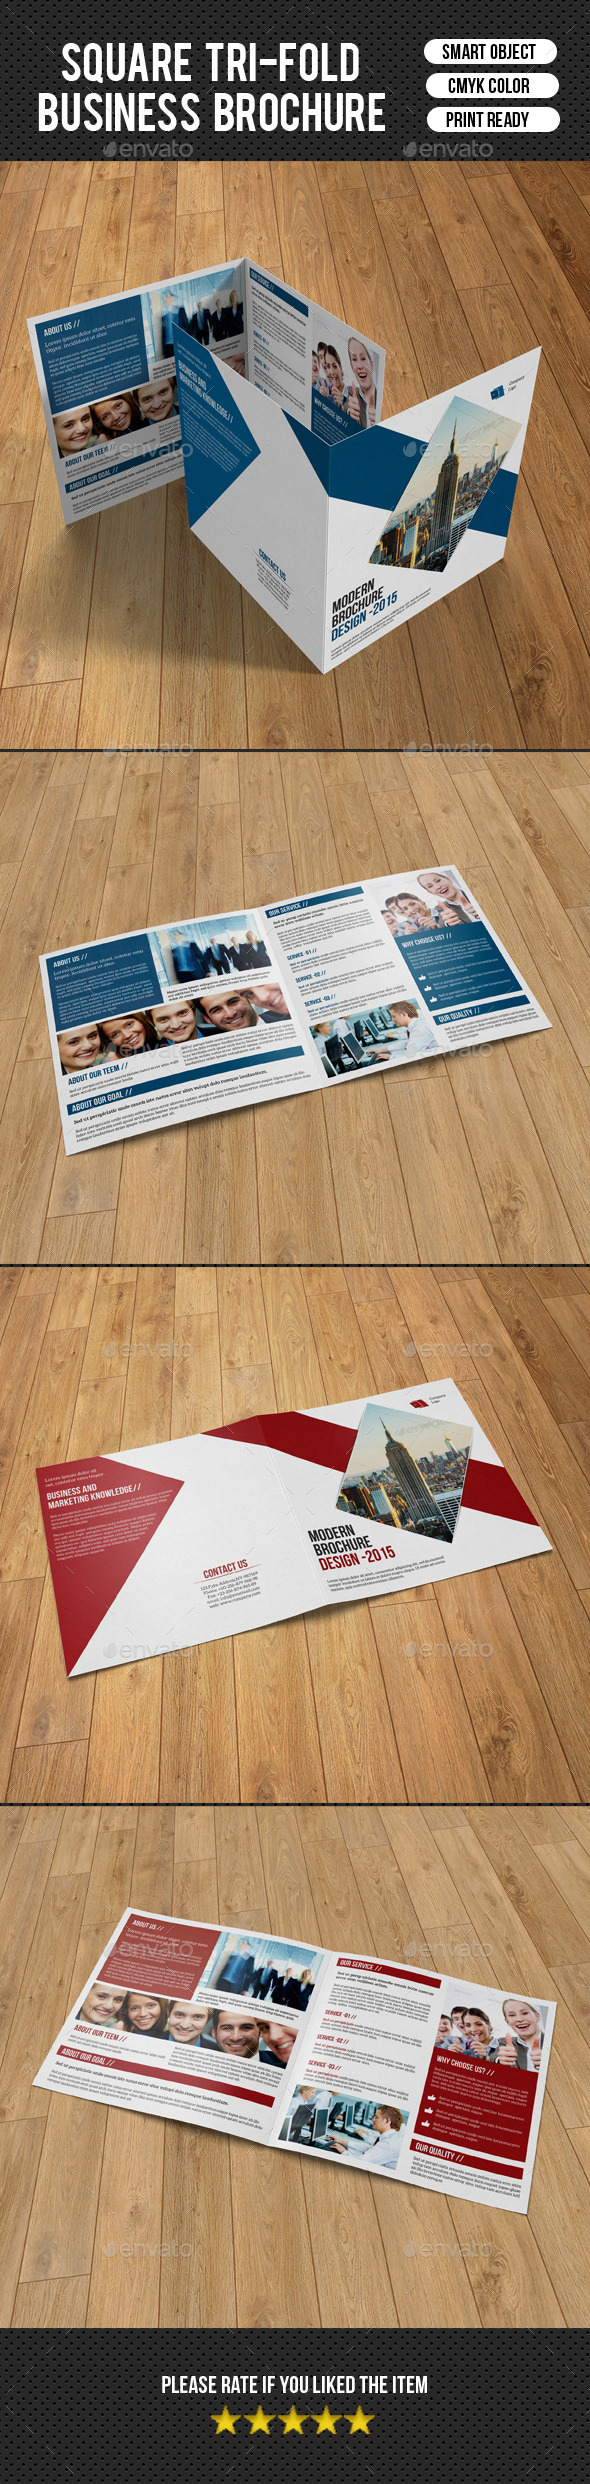 GraphicRiver Corporate Square Bifold Brochure-V12 10315195